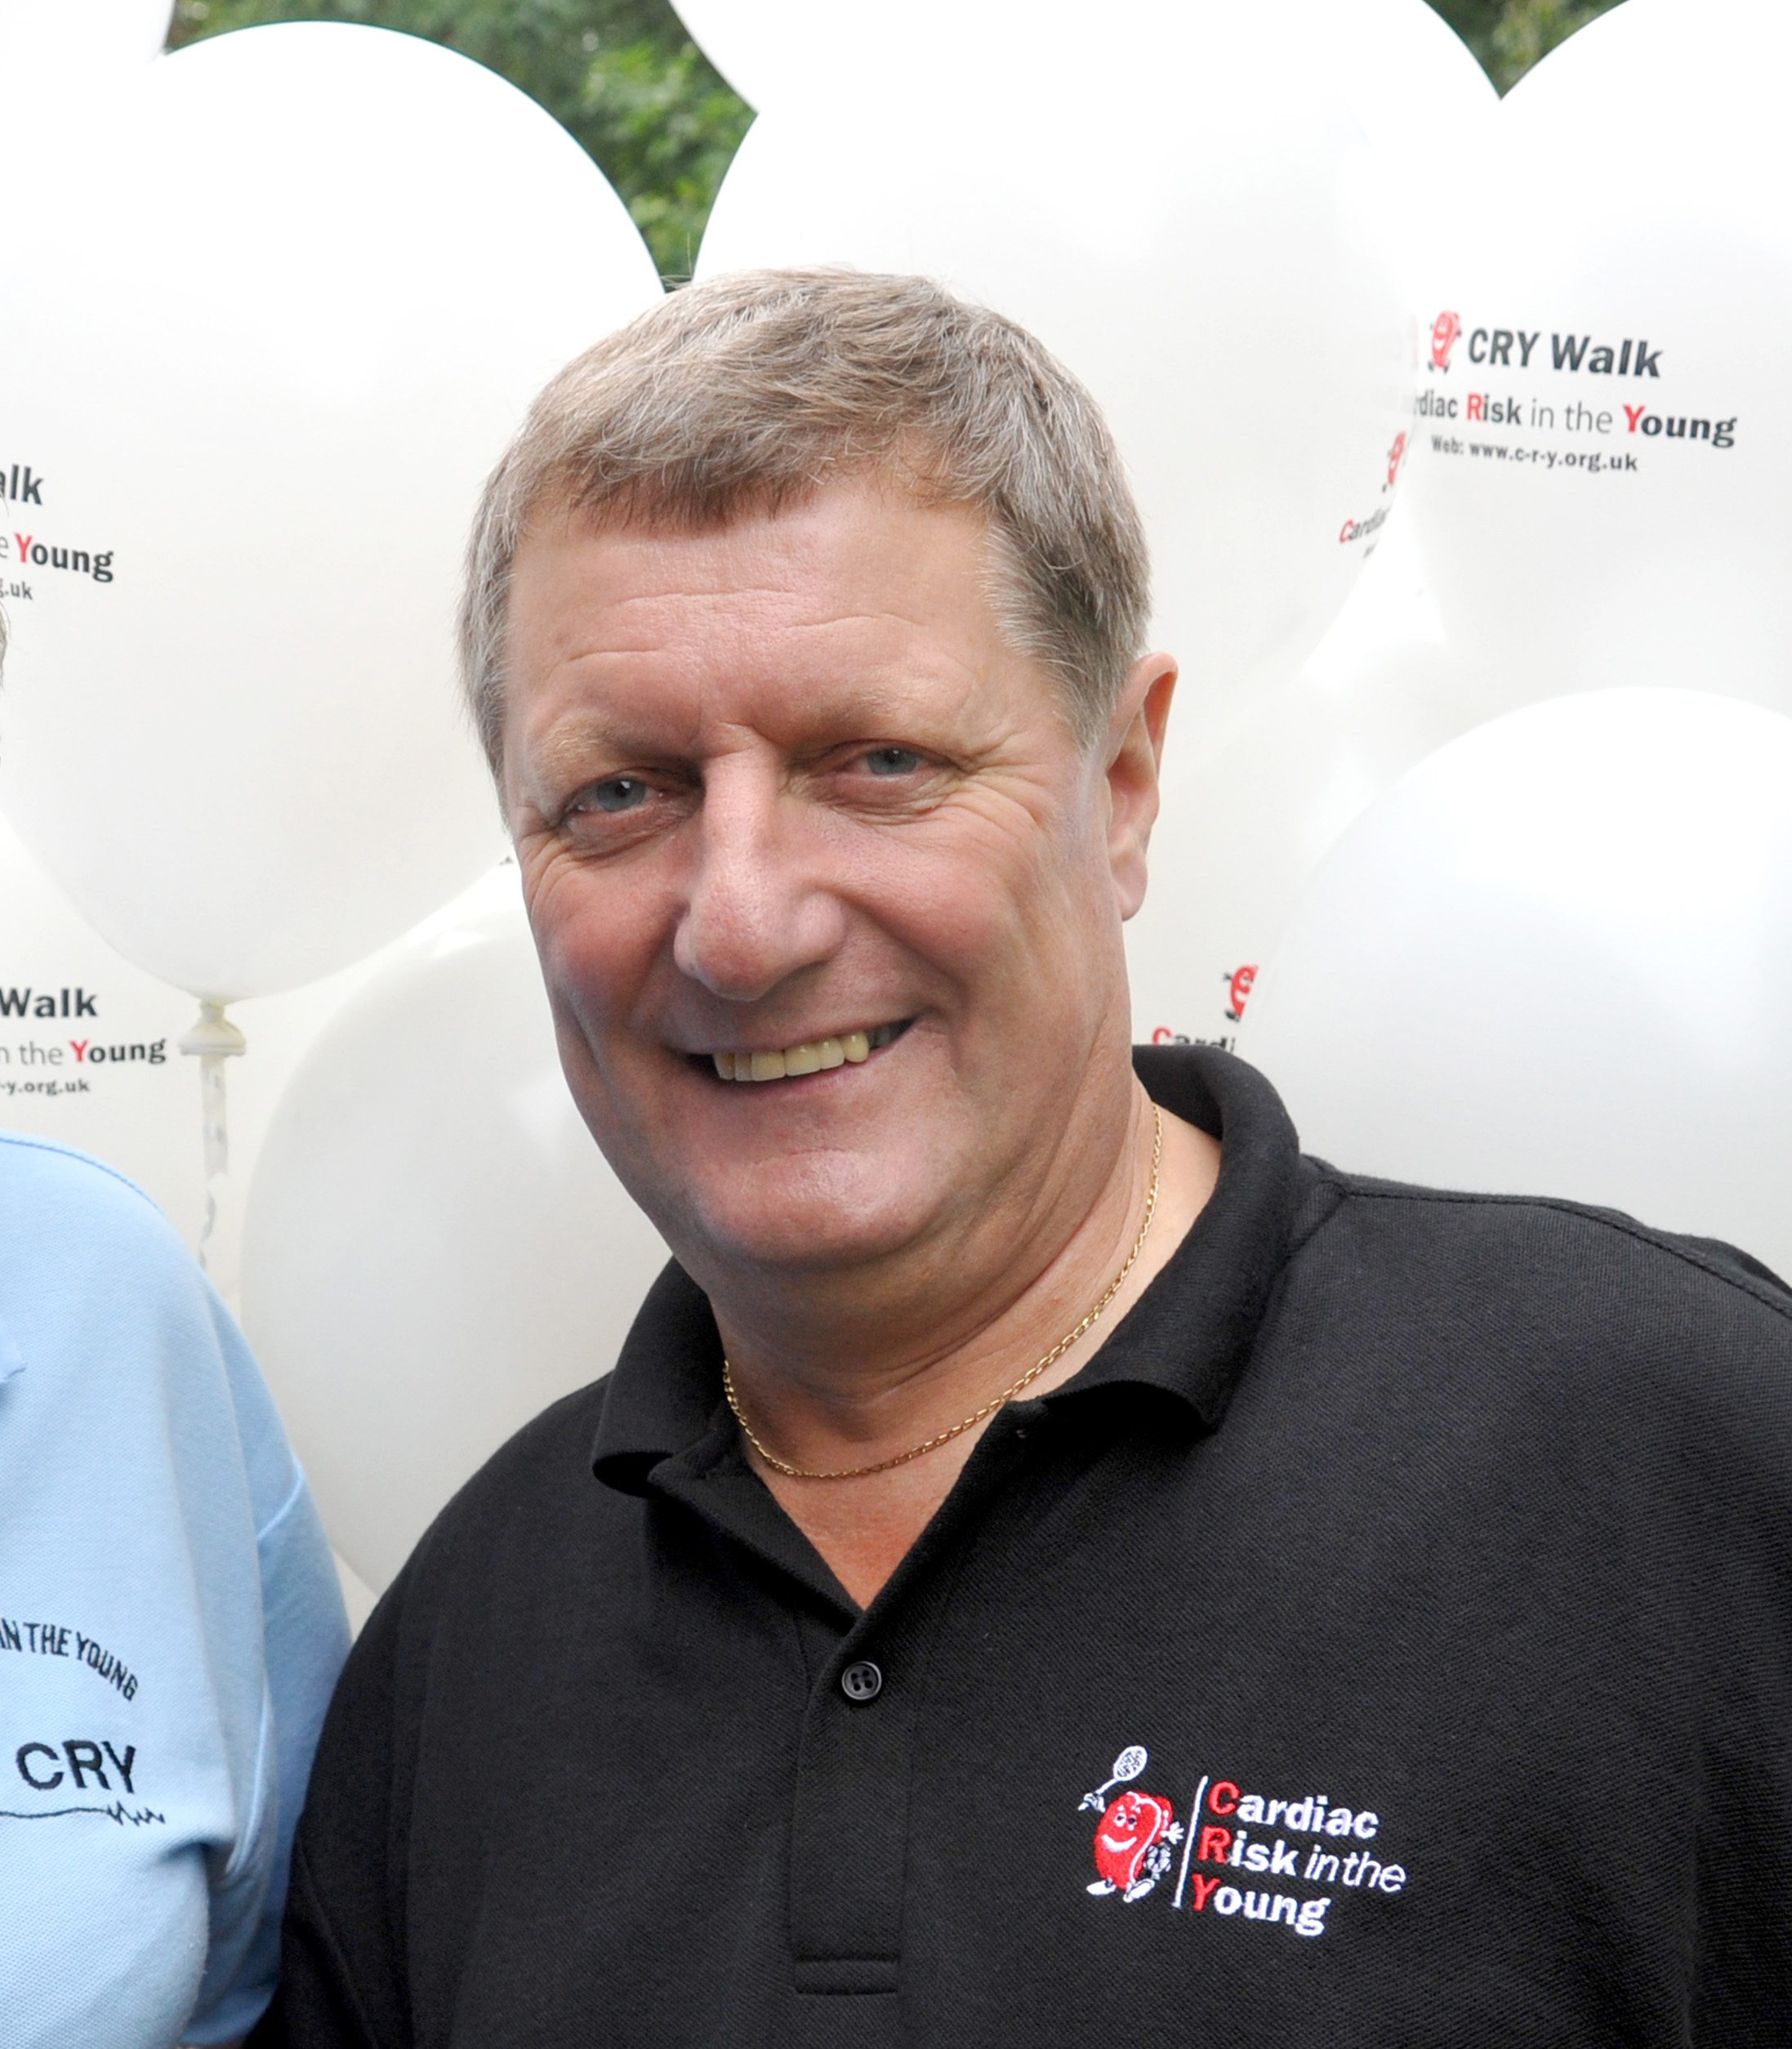 The 4th Annual CRY (Cardiac Risk in the Young) Durham Riverside Walk took place on Saturday 5th October where people walking in memory of loved ones took part in the sponsored walk.